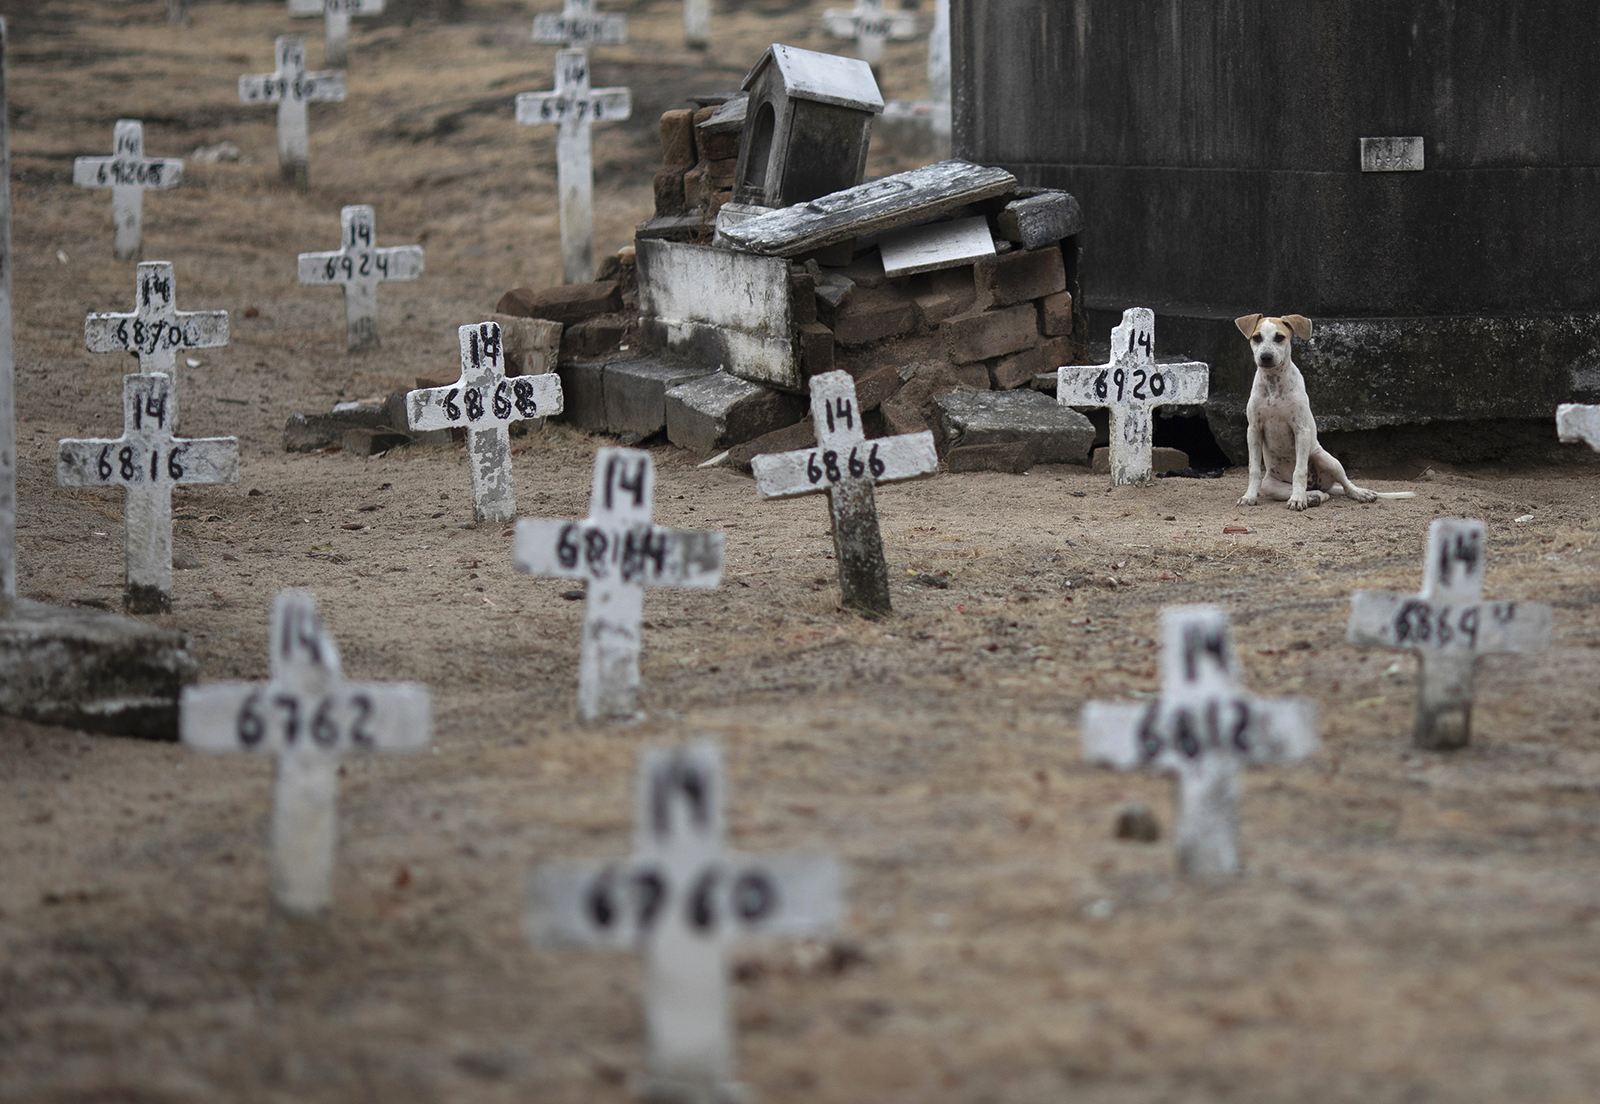 A dog sits among numbered crosses at the Iraja cemetery, where many COVID-19 victims are buried, in Rio de Janeiro, Brazil, Friday, Feb. 5, 2021. (AP Photo/Silvia Izquierdo)